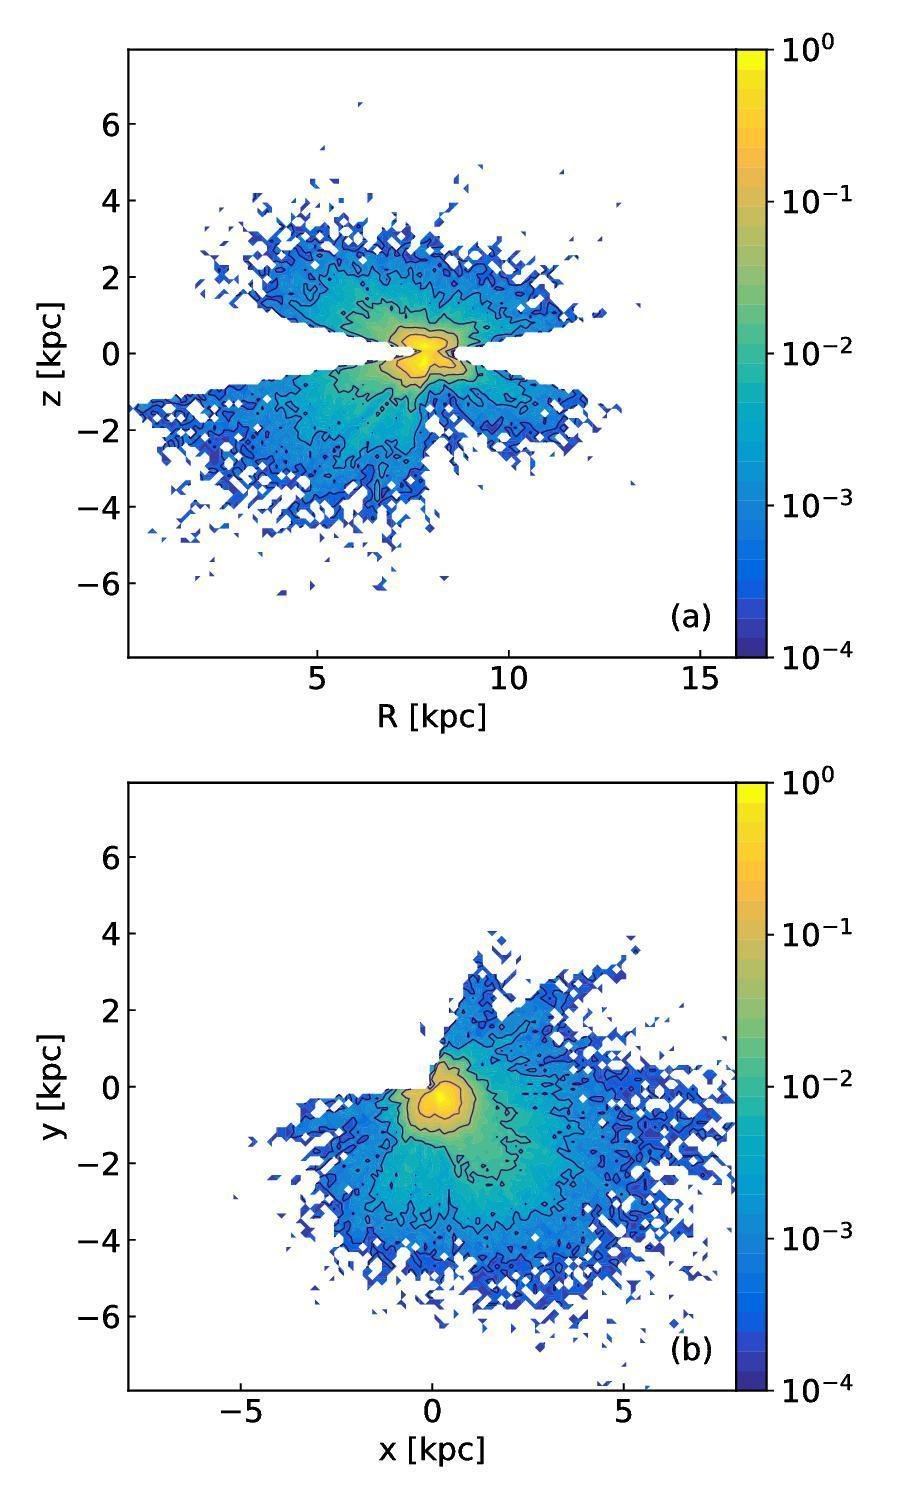 Normalised density distribution of the 340,000 stars observed by GALAH. White regions are areas, in which the survey team has not observed stars, because they are either to close to the Galactic plane (with heights z above the plane close to 0) or too far away. The upper plot is showing the Galacto-centric radius (R) and height above the Galactic plane (z) with the Sun at (8,0). The lower panel shows the distance from the Sun (0,0) as a phase-on view in Galactic coordinates (x,y), where the Galactic Centre is at x=8.